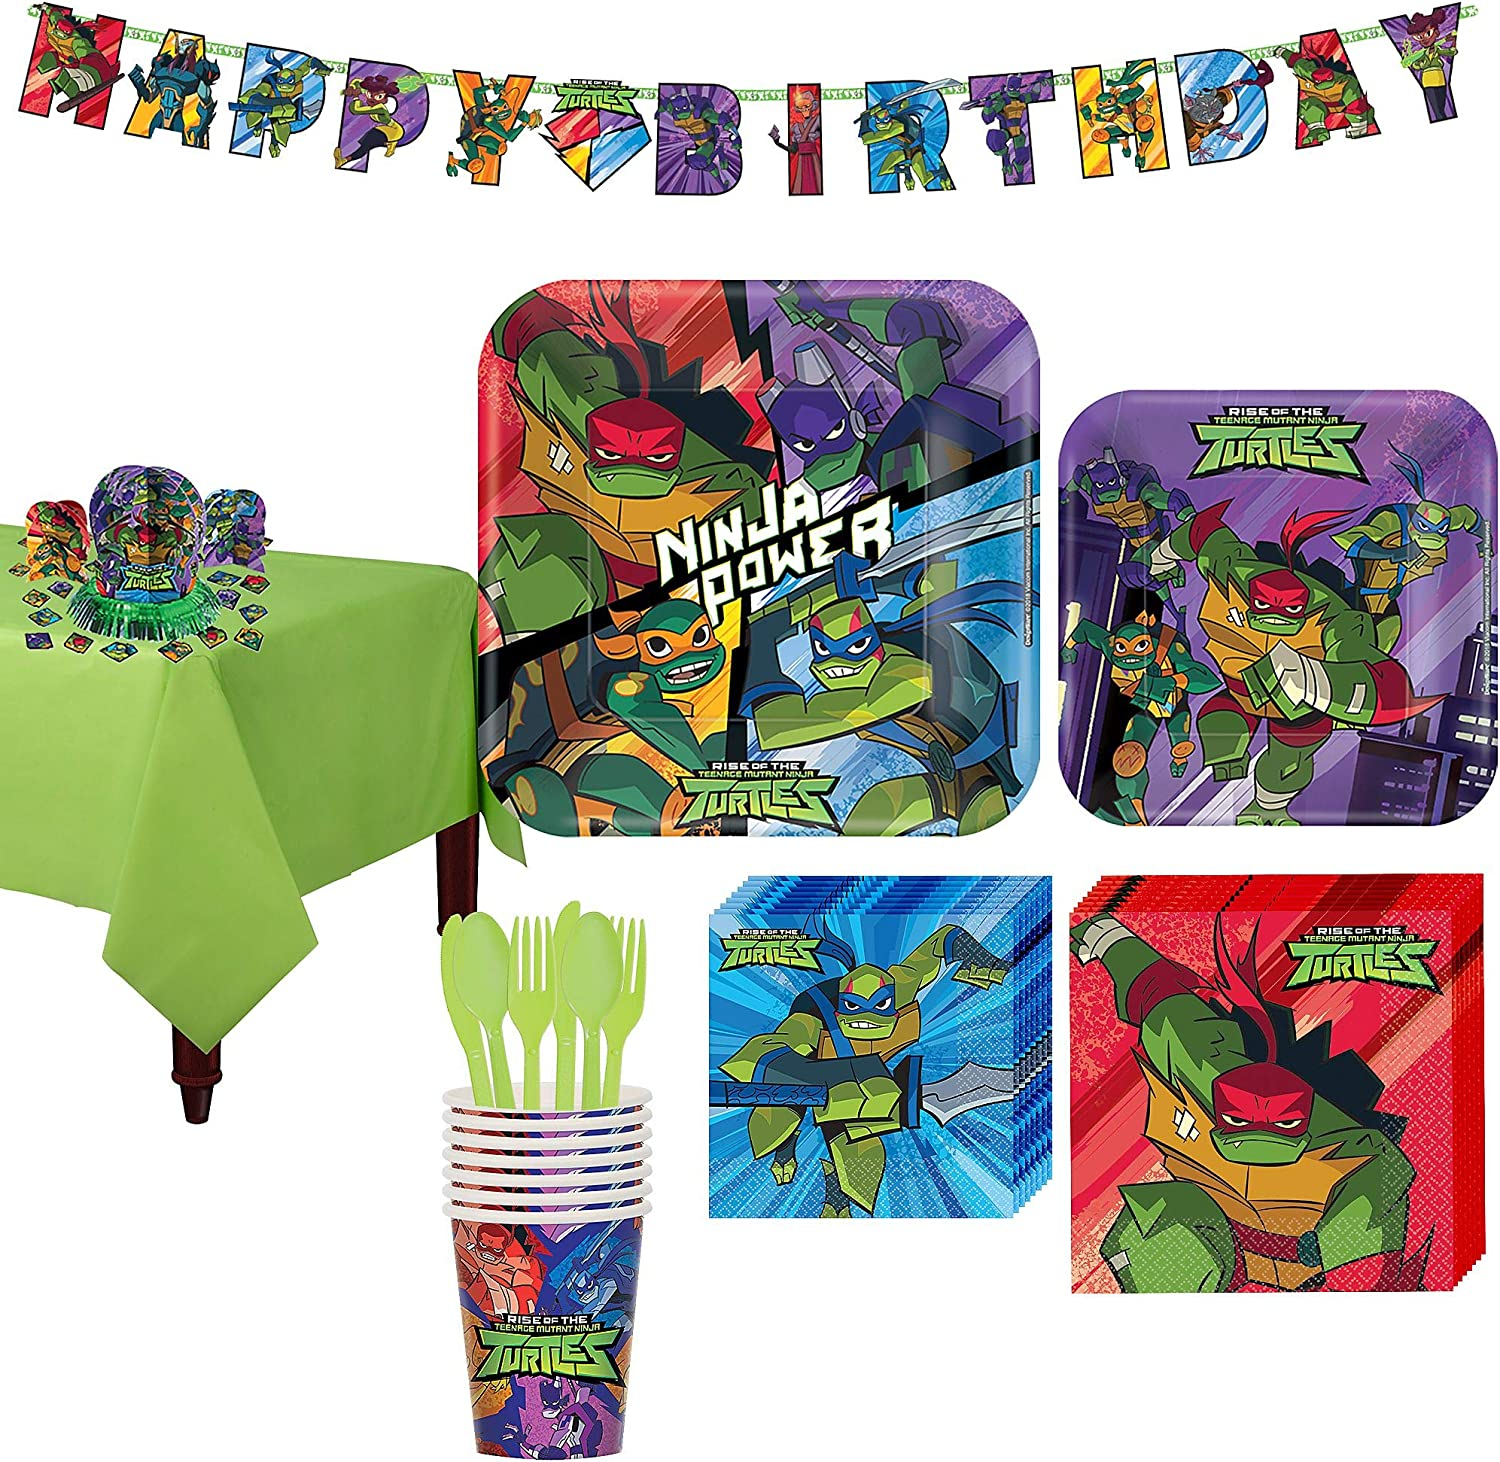 Party City Rise of the Teenage Mutant Ninja Turtles Party Kit, Includes Tableware, Tablecloths and Decor; 8 Guests